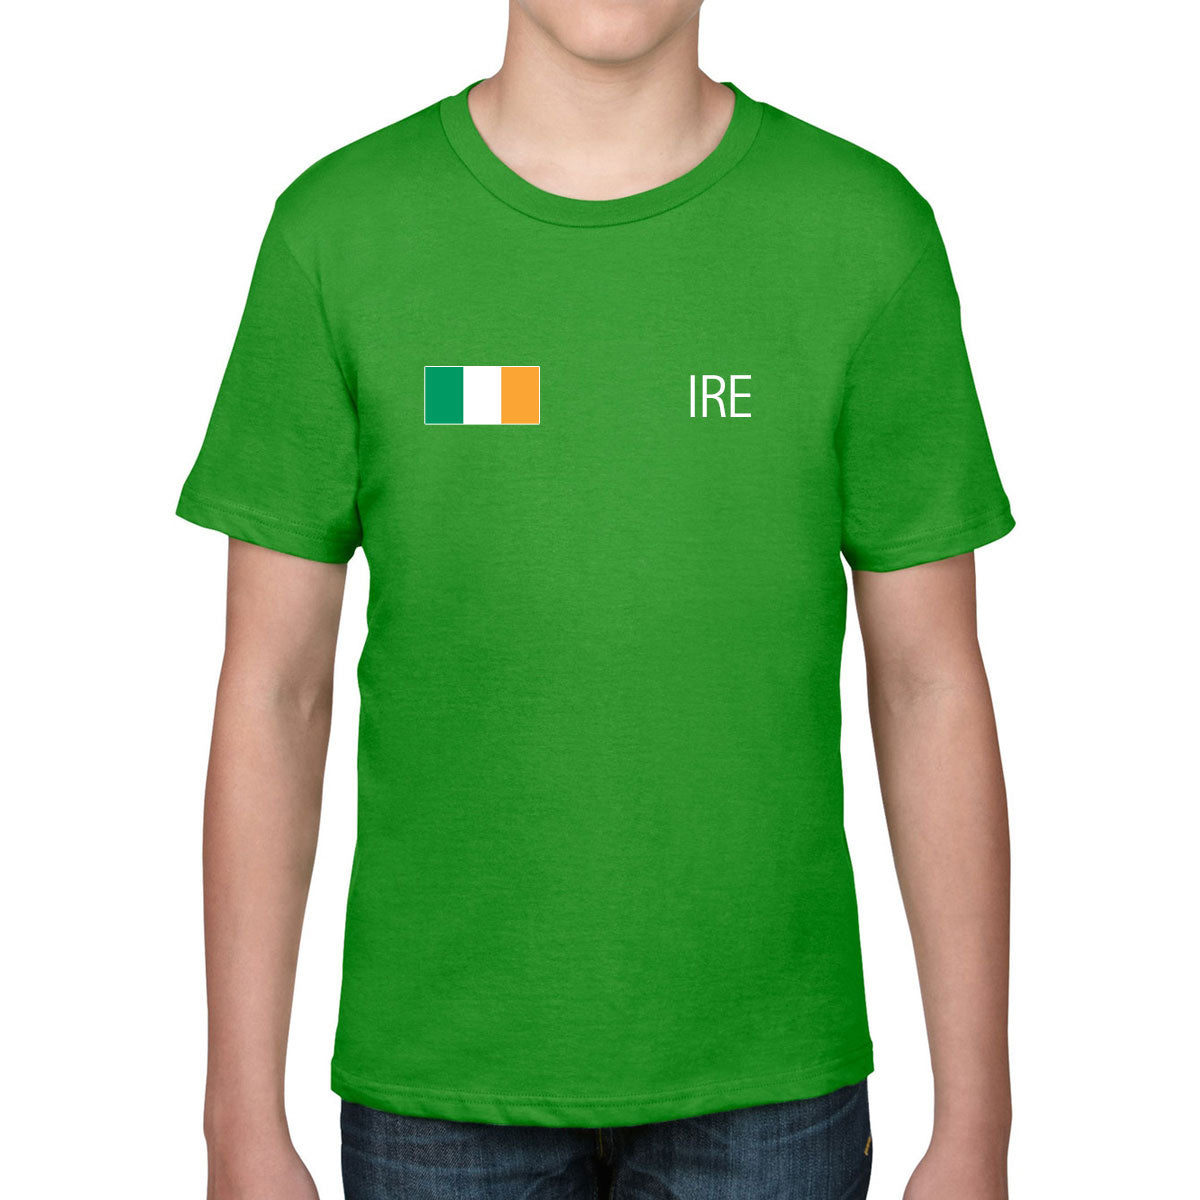 Ireland Rugby Kid's Flag Tee - First XV rugbystuff.com